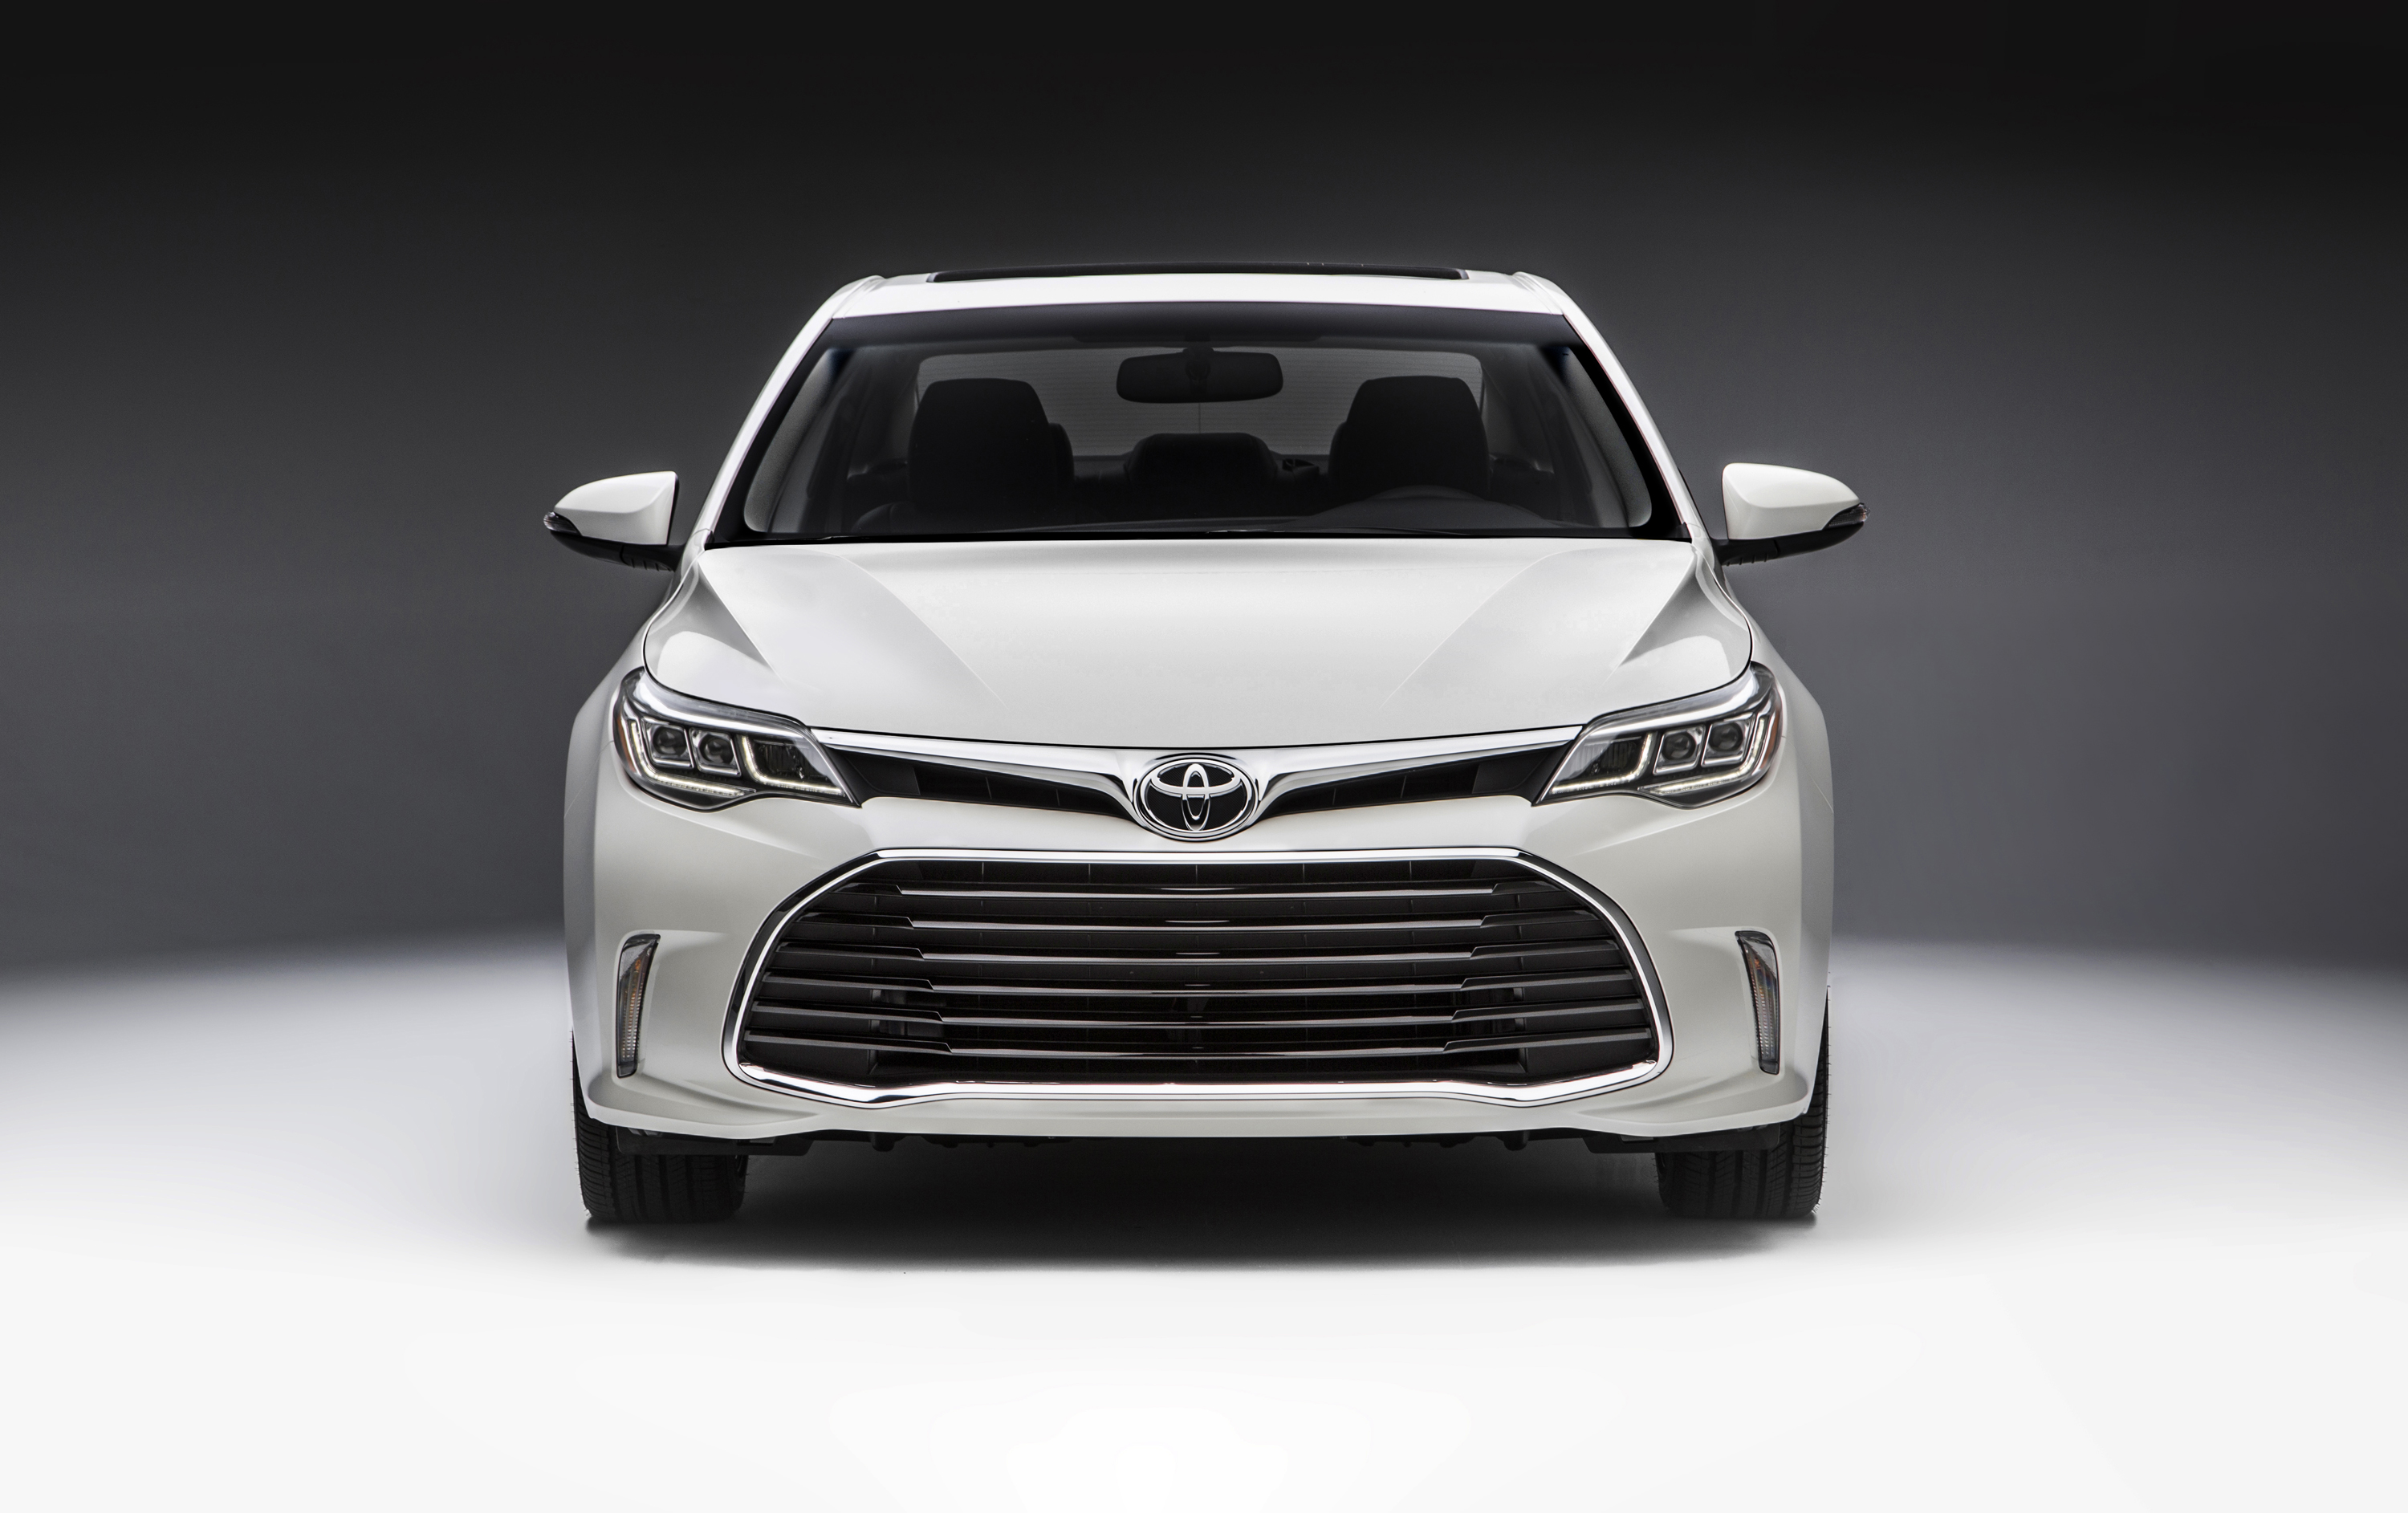 rear avalon new toyota trend motor canada side touring cars view research en models reviews used